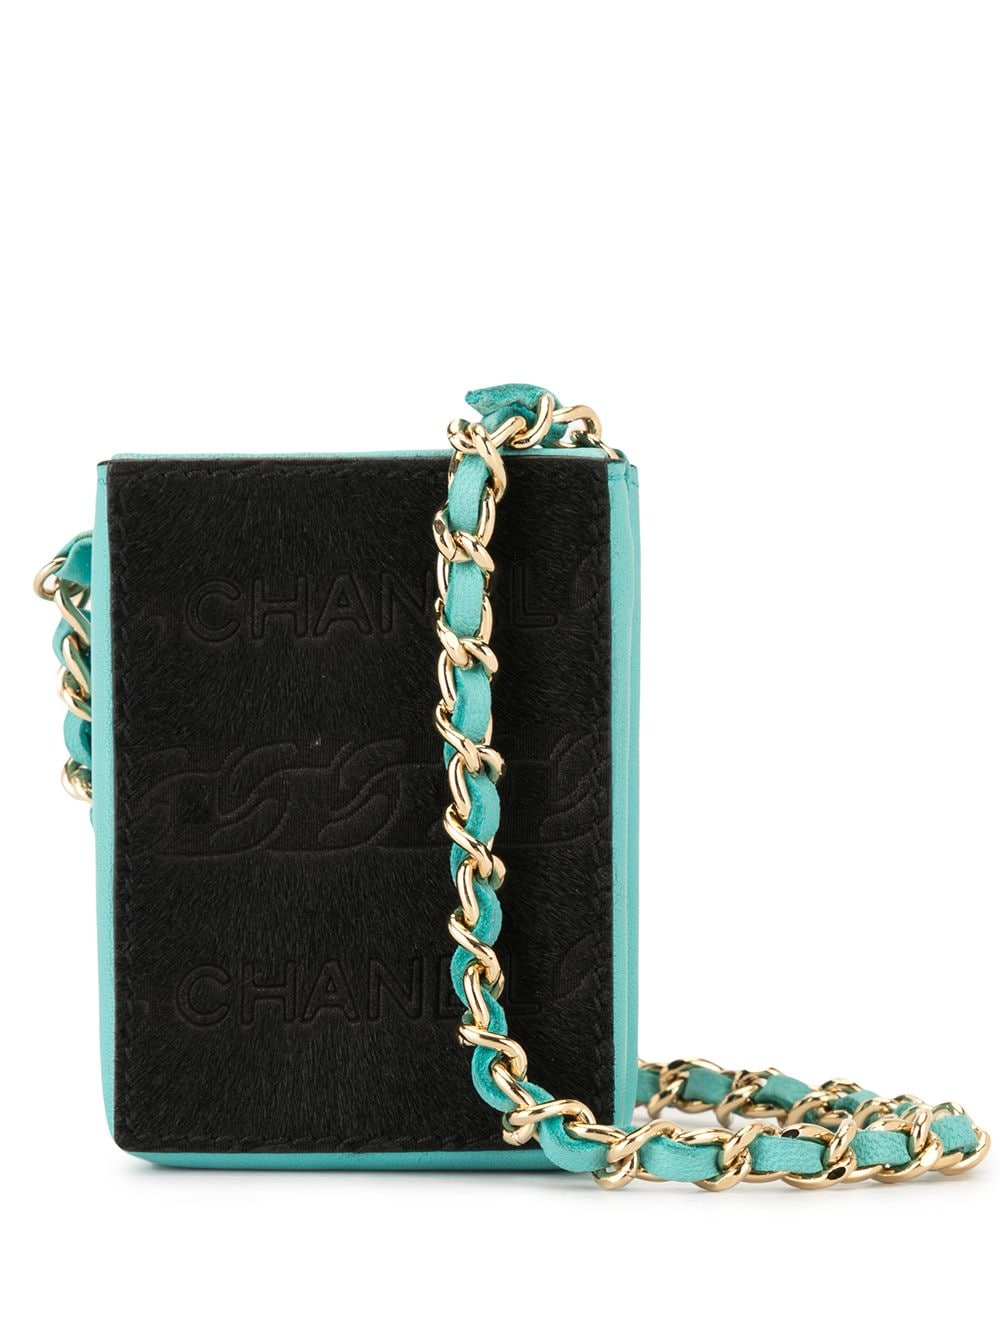 Chanel Pre-Owned Mini Clutch mit Kettenriemen - Blau